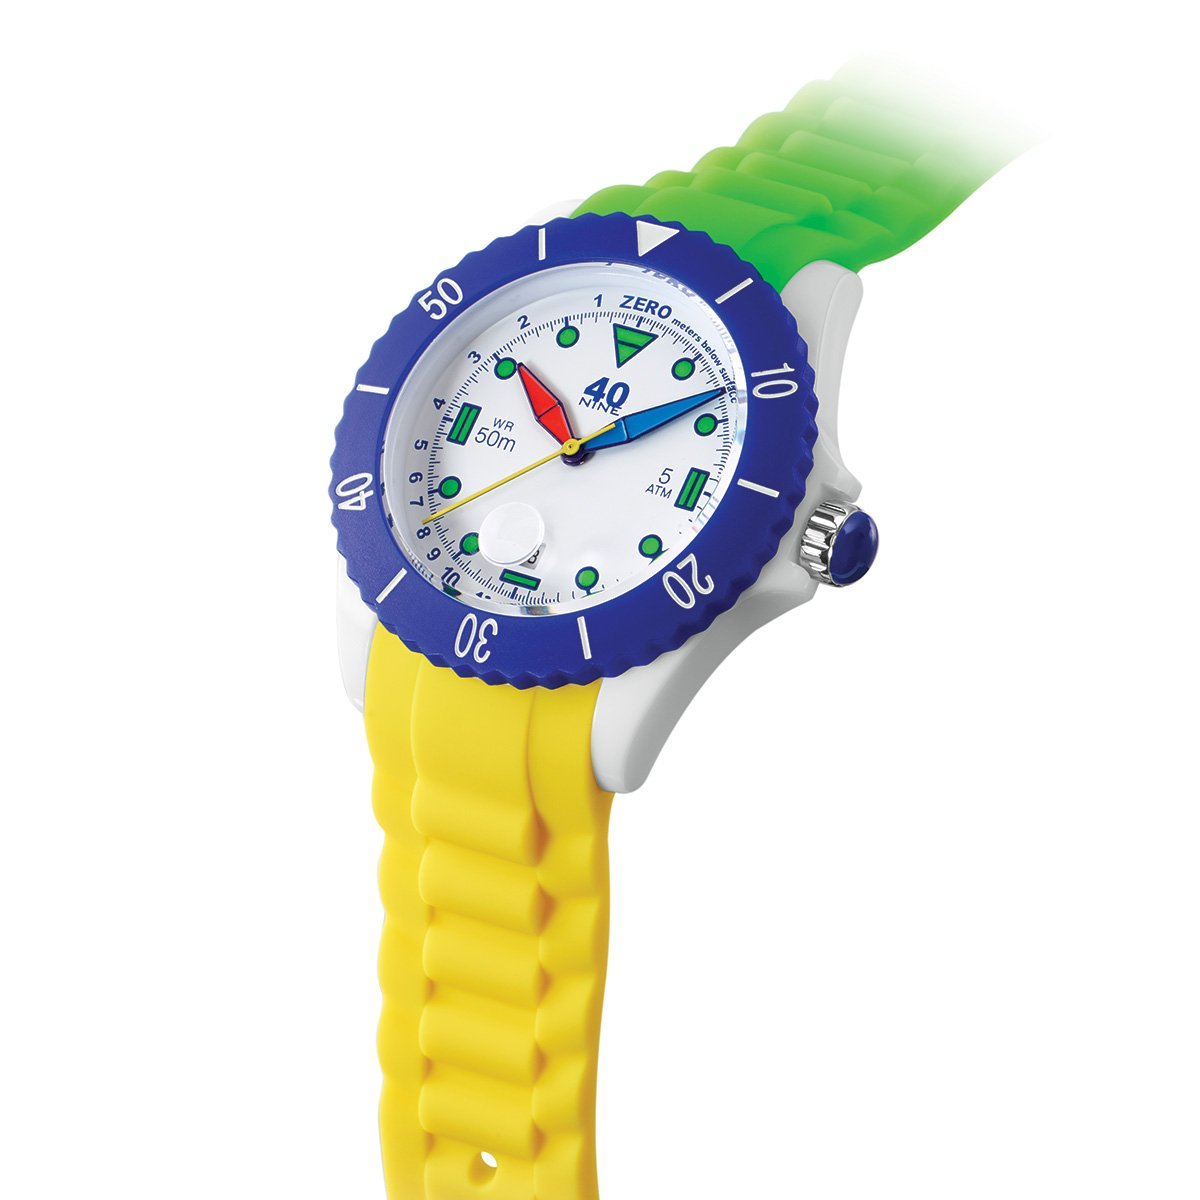 40Nine Japanese-Quartz Watch with Silicone Strap, Green, 21.3 Model 40NINE02 FUN30